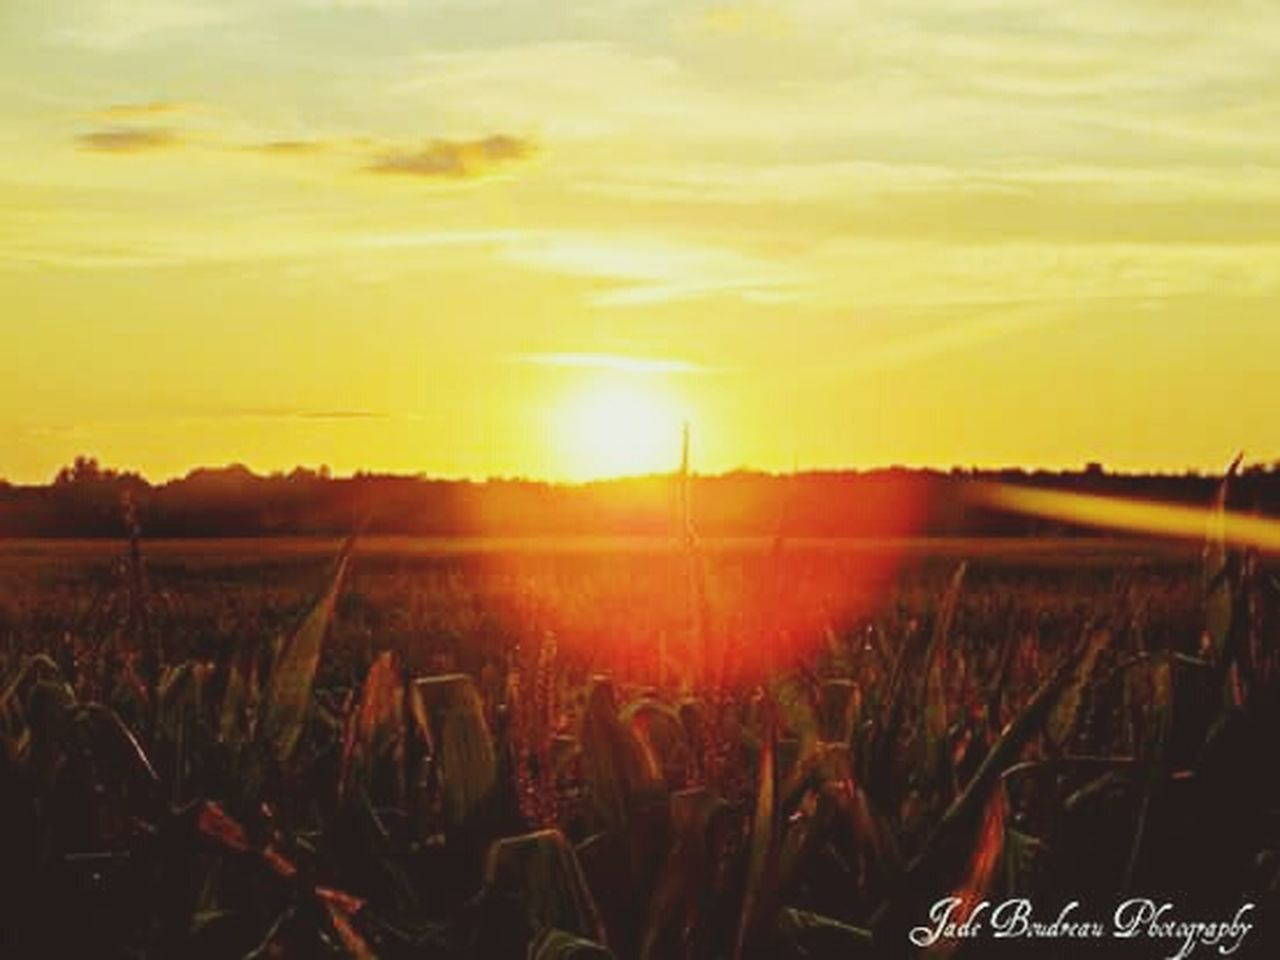 sunset, growth, nature, field, agriculture, beauty in nature, tranquility, plant, scenics, tranquil scene, outdoors, landscape, rural scene, sky, cereal plant, no people, freshness, day